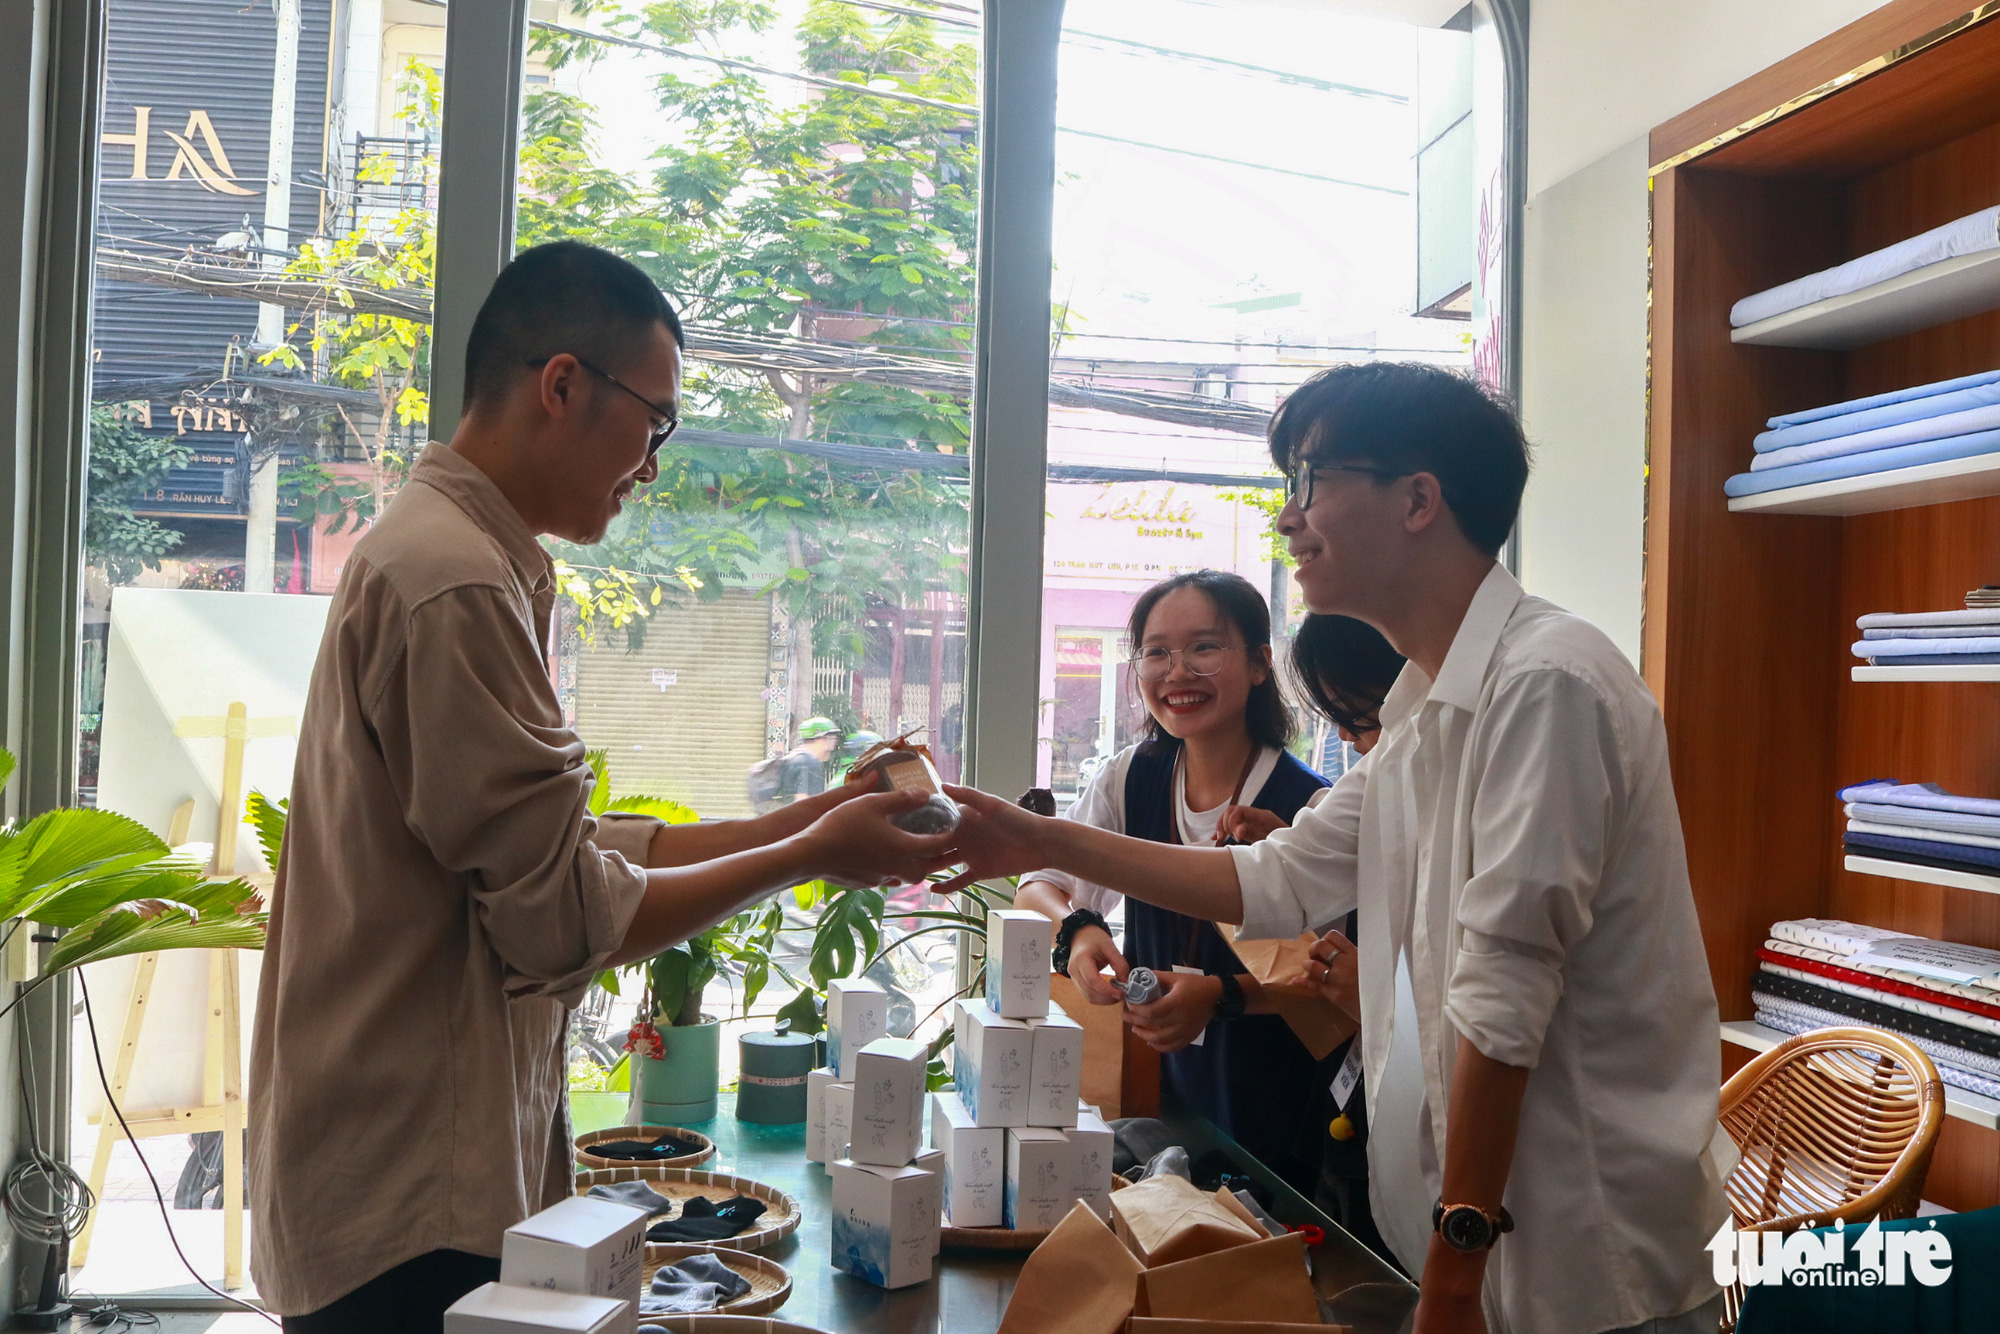 Hoang Quy Binh introduces the socks made from recycled plastic bottles. Photo: Huu Huong / Tuoi Tre